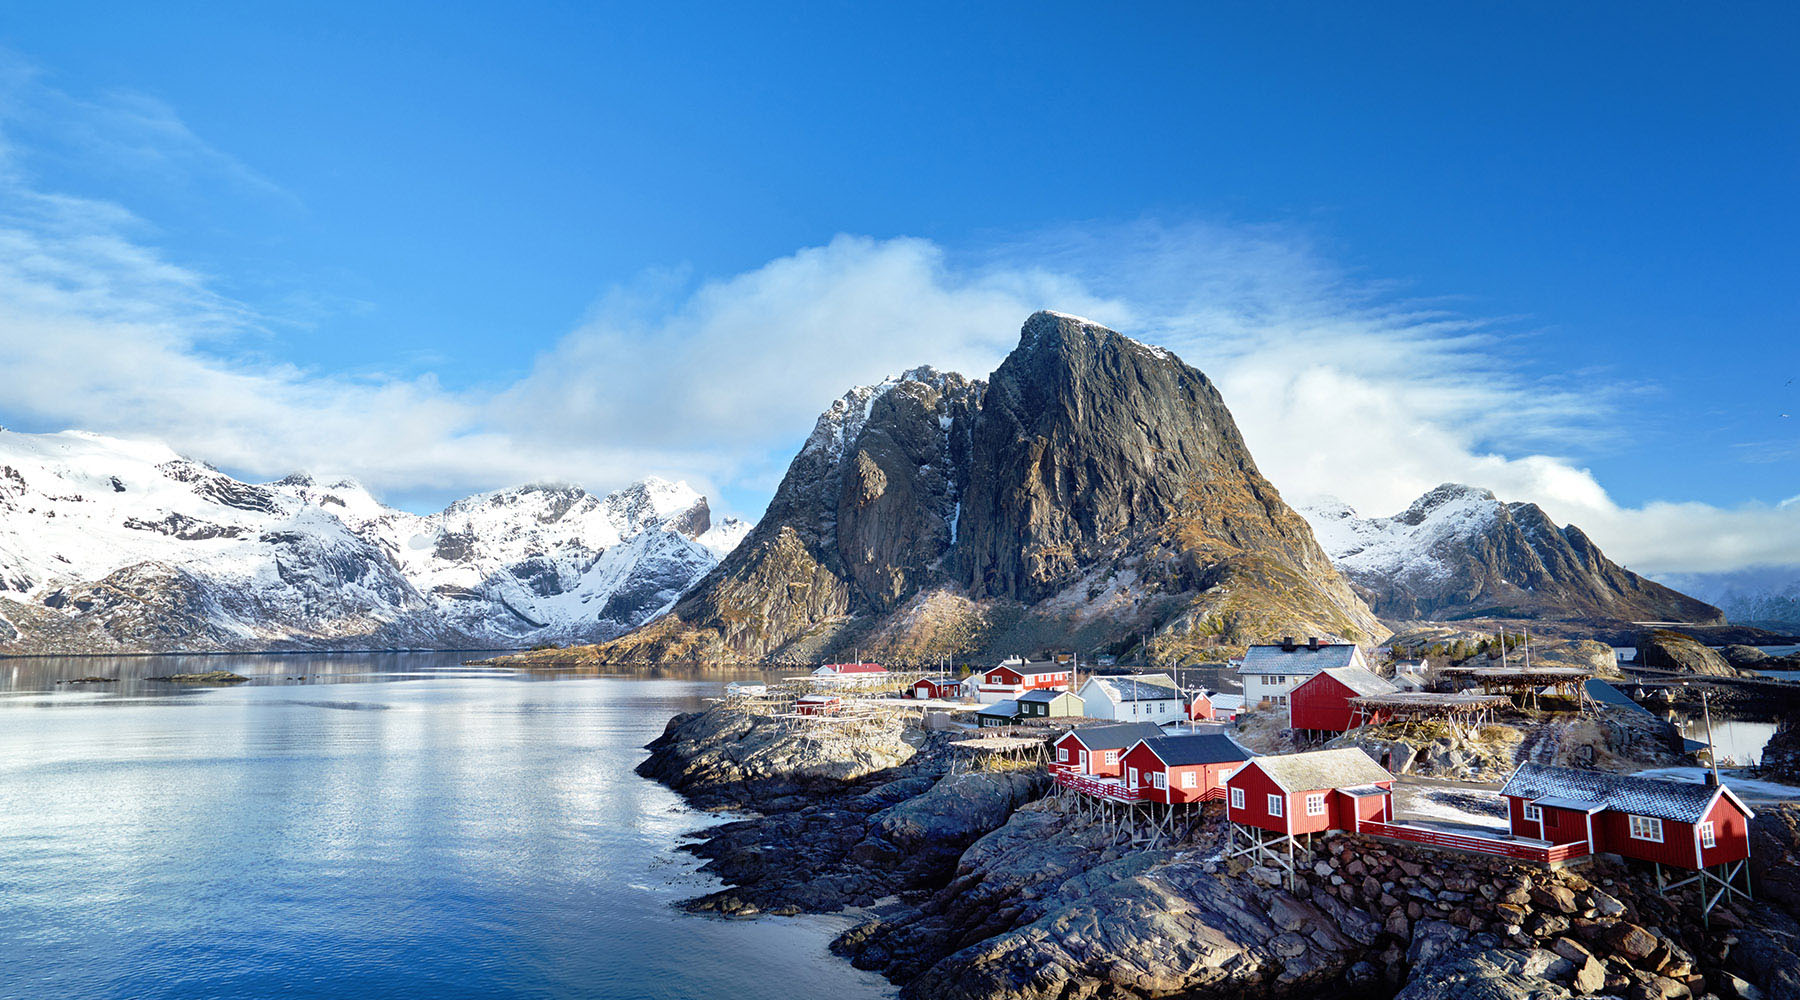 17-Nt Norway Intensive North Cape Voyage